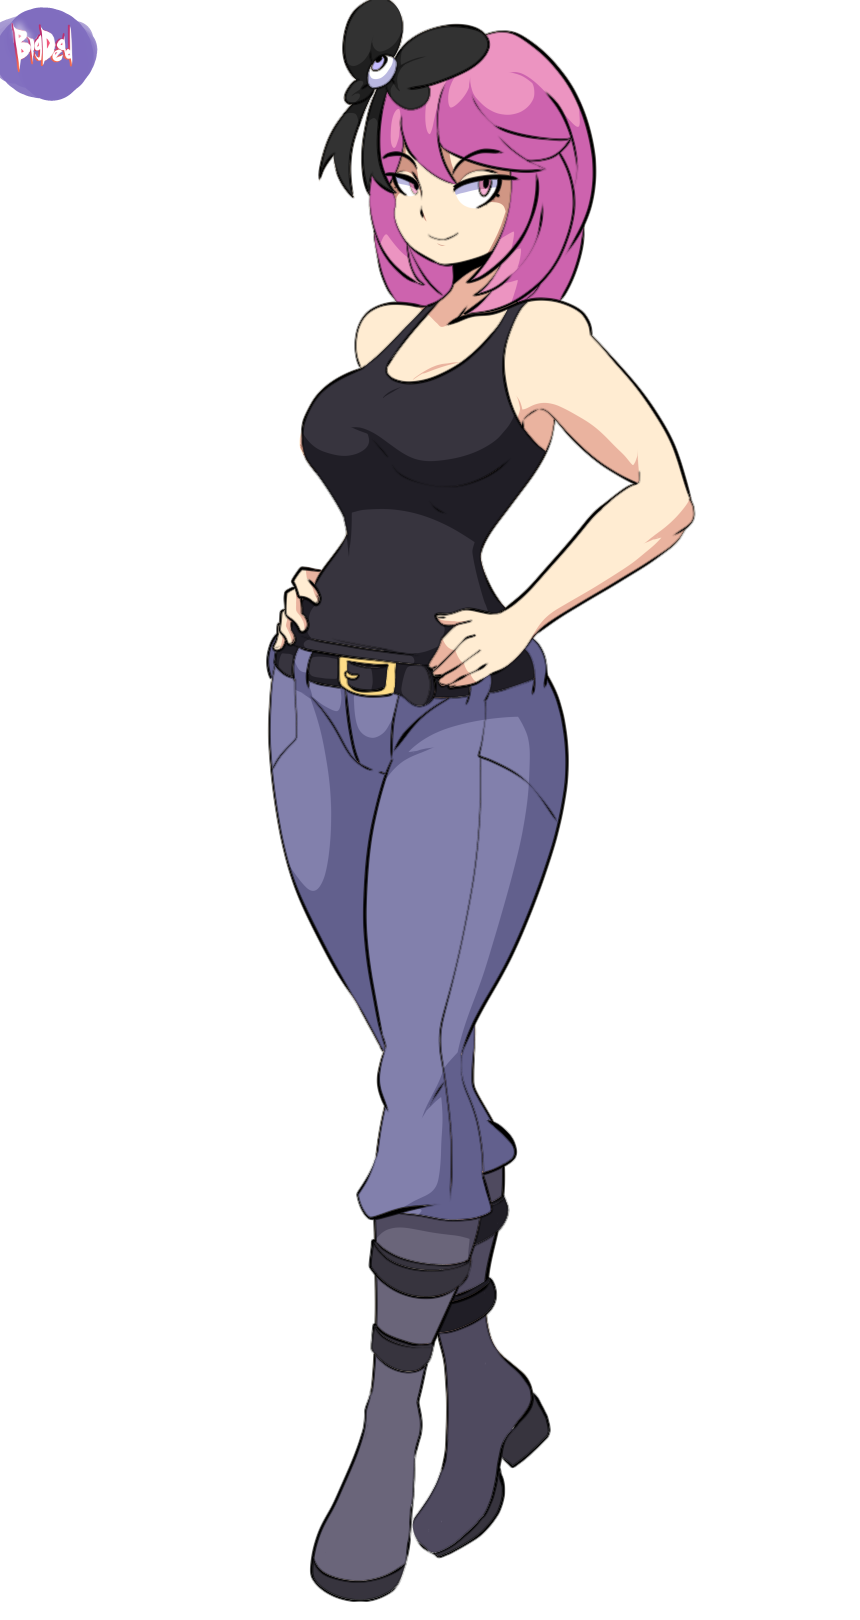 Commission: Hell yeah, jeans.